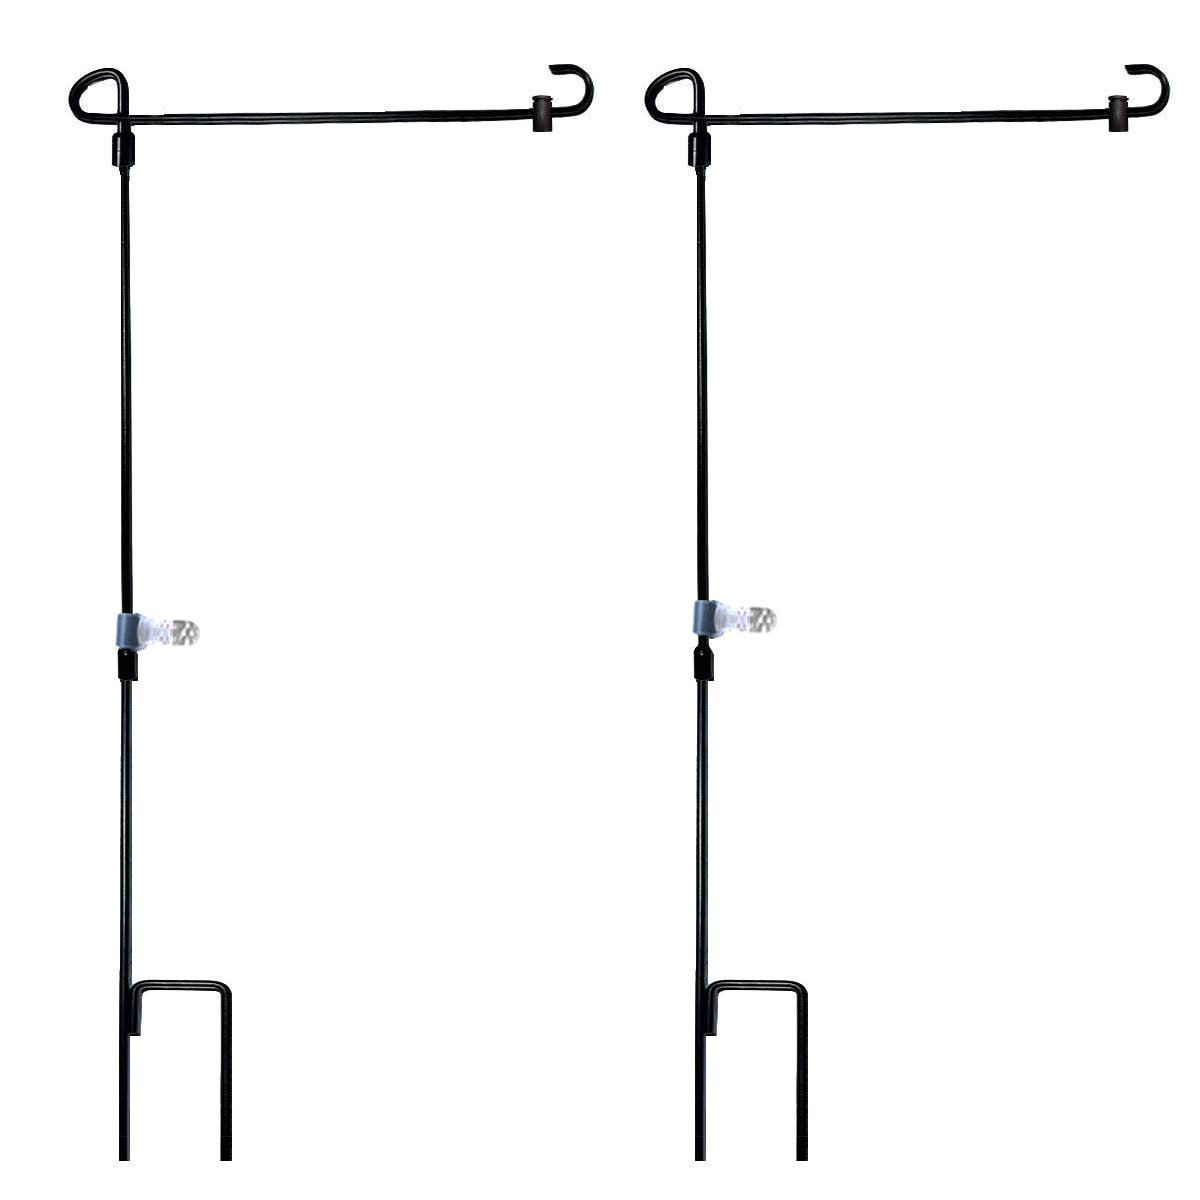 Garden Flag Stand-Holder-Pole with Garden Flag Stopper and Anti-Wind Clip 36.3''H x 16.5''W For USA Flag Or Season Garden Flags Keep Your Flags from Flying Away in High Winds(2 Pack)